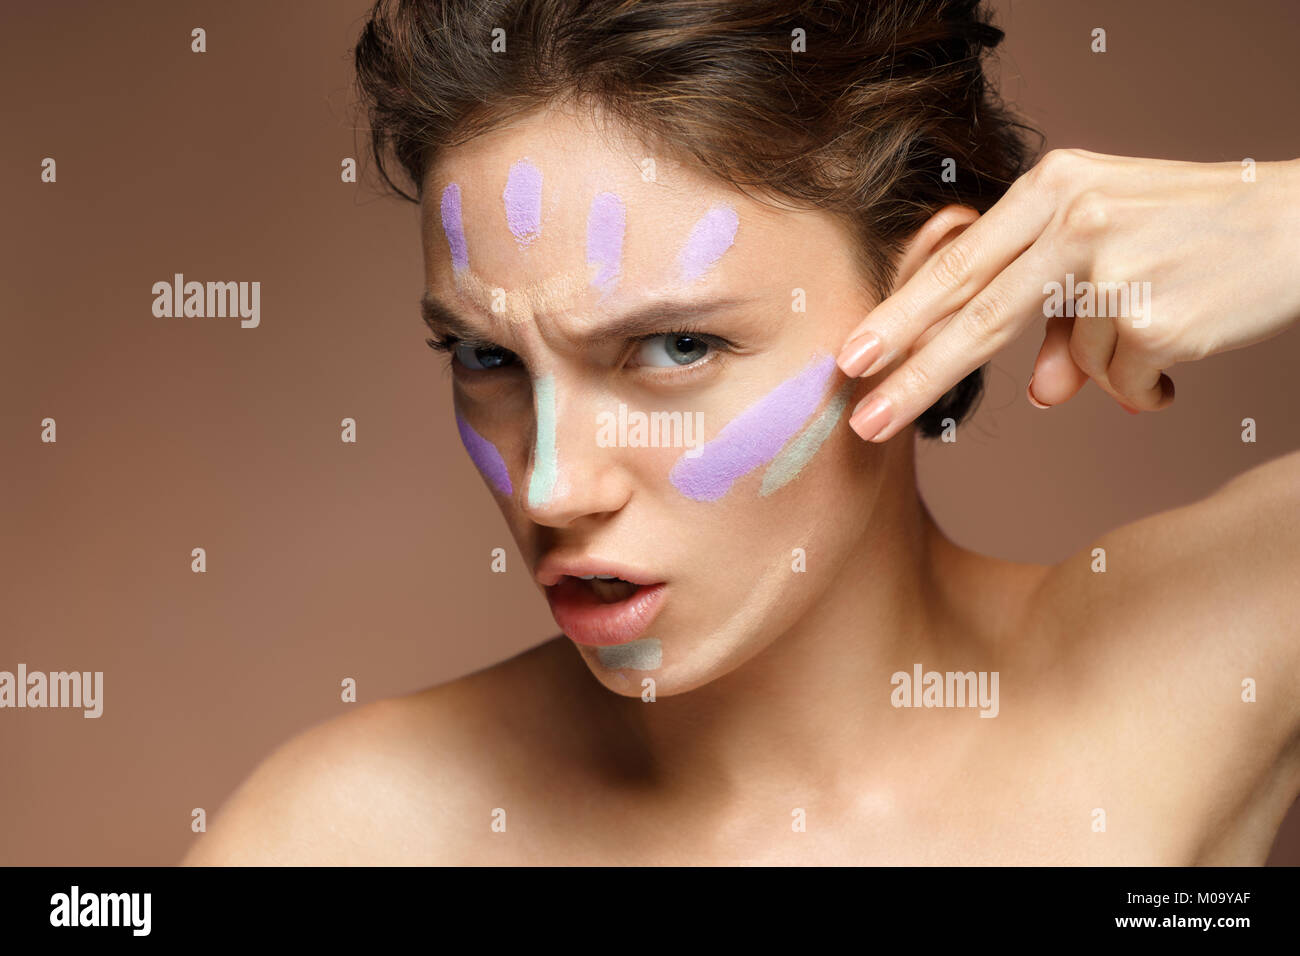 Resolute woman doing makeup using concealer. Photo of beautiful brunette woman on brown background. Skin care concept - Stock Image